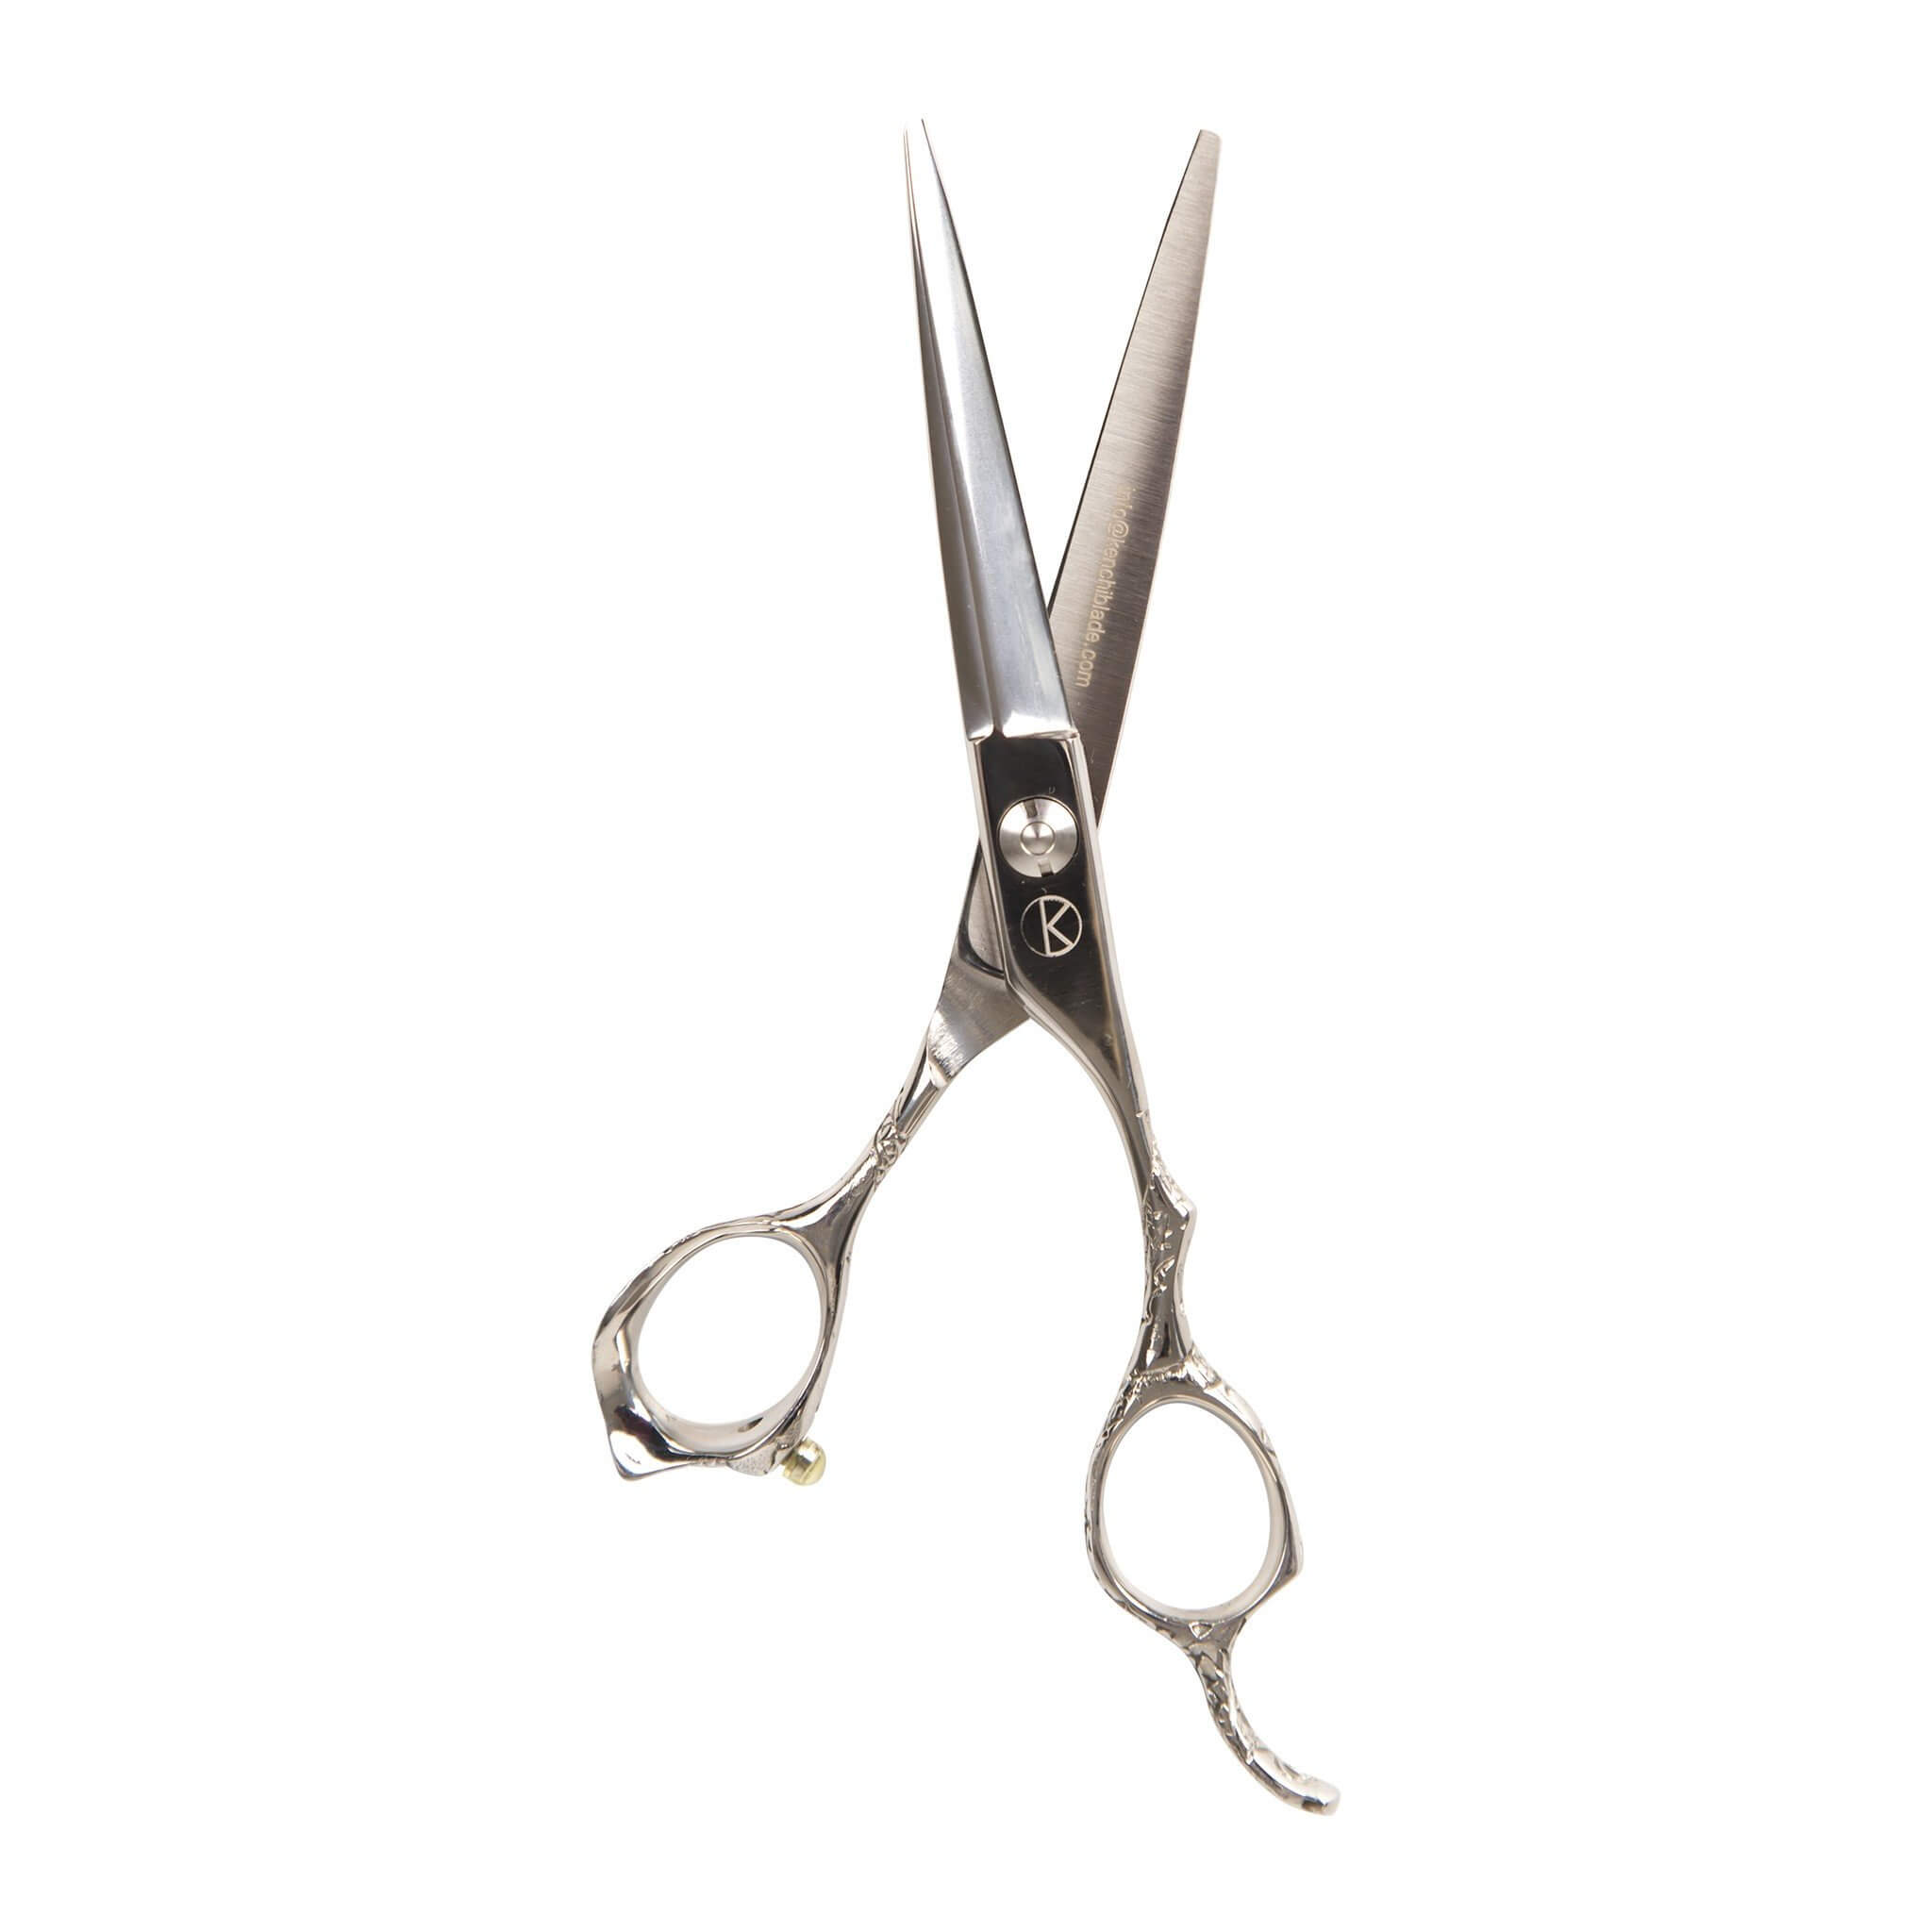 Yaka Hairdressing & Barbering Scissor